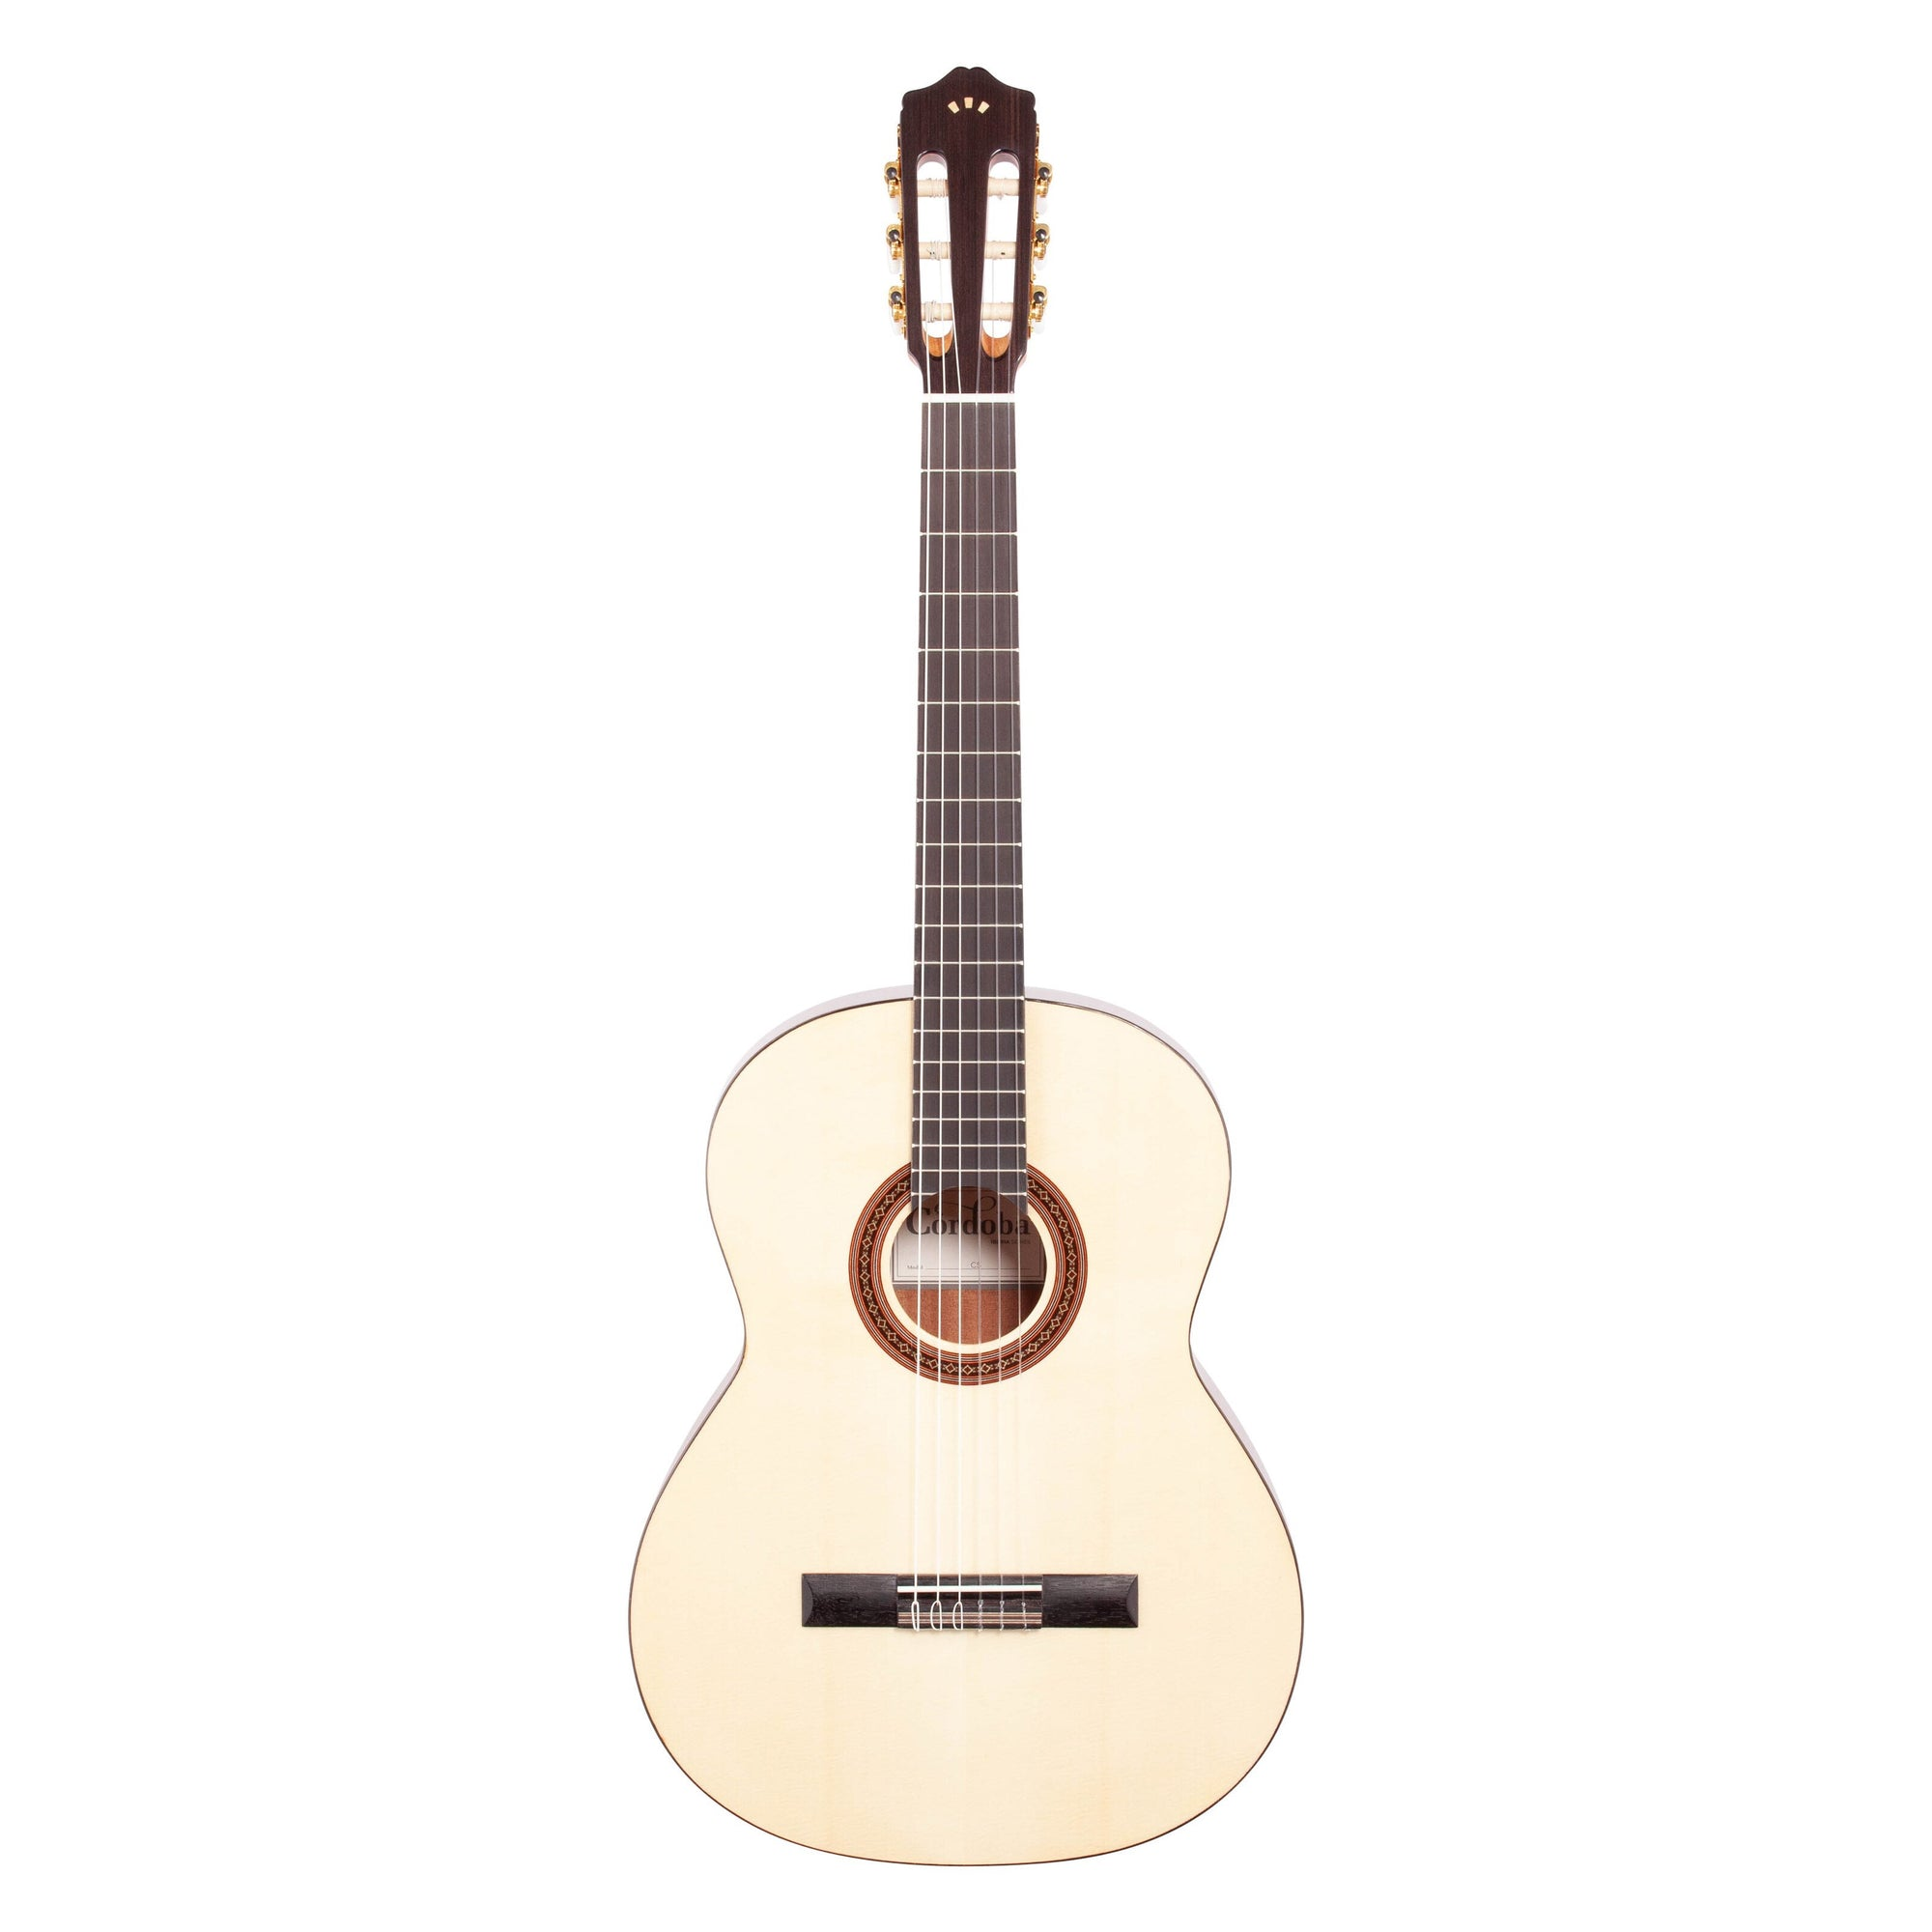 Cordoba C5 Spruce Top Nylon-String Classical Acoustic Guitar